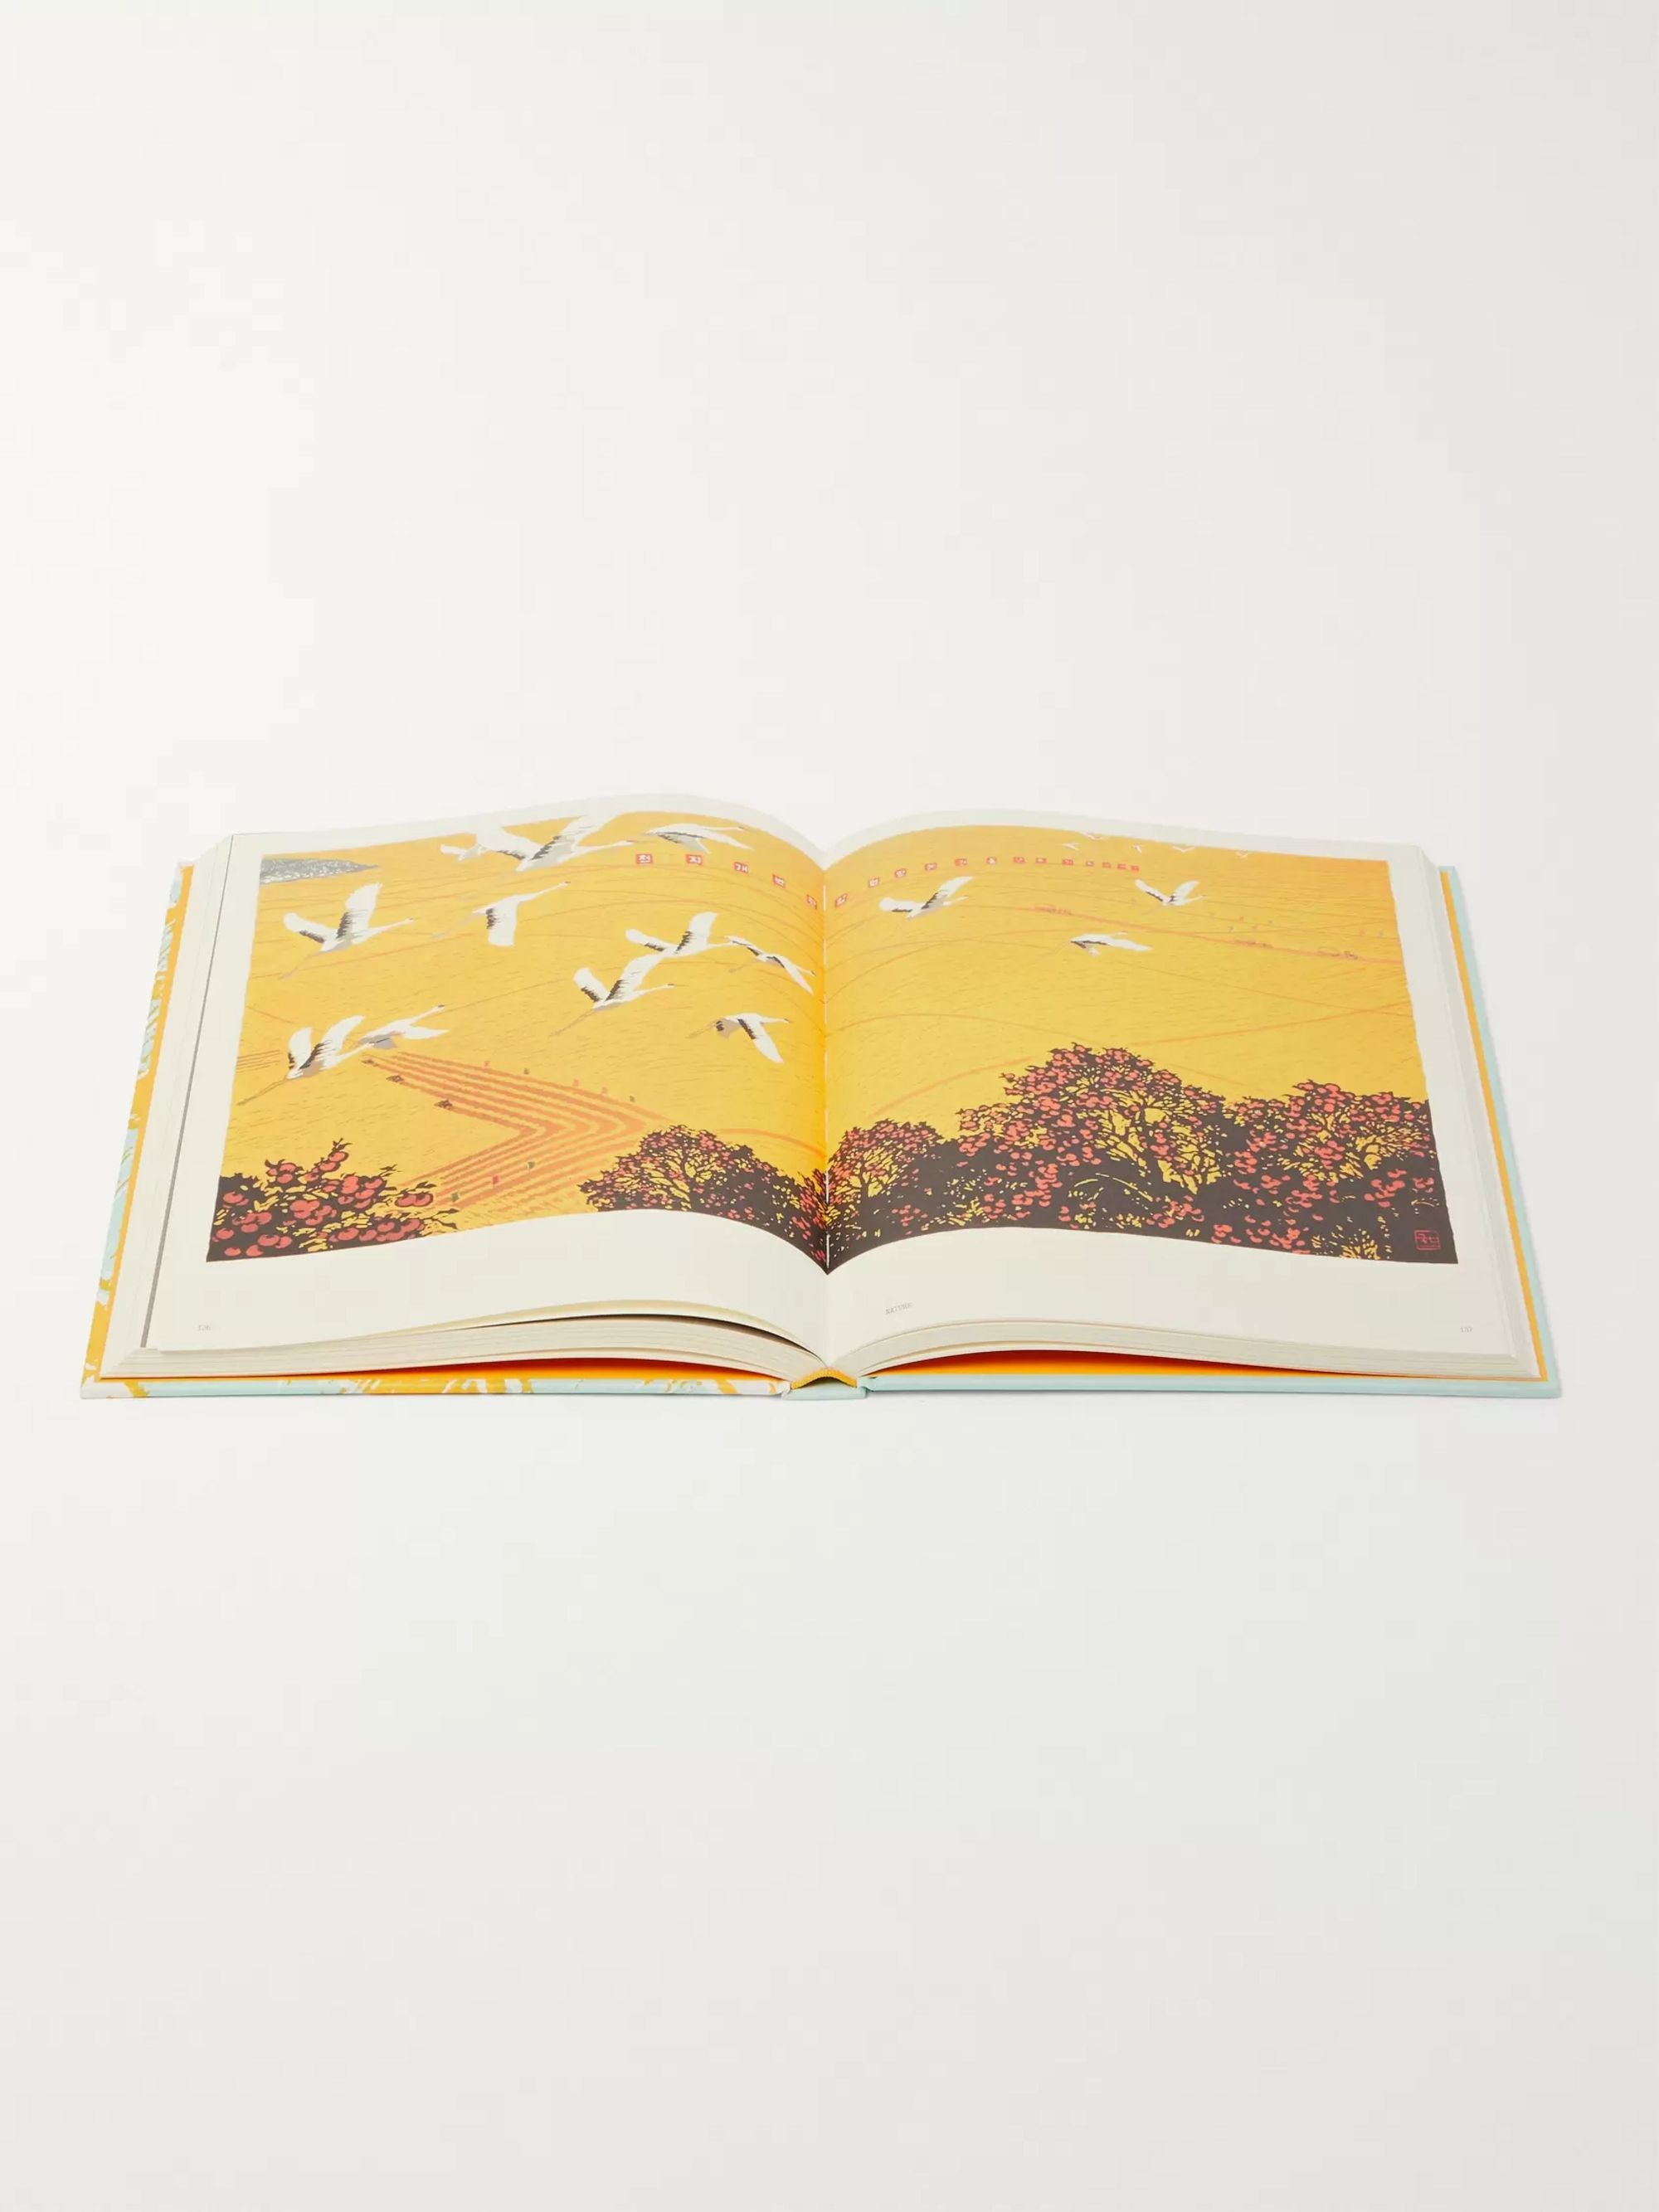 Phaidon Printed in North Korea: The Art of Everyday Life in the DPRK Hardcover Book